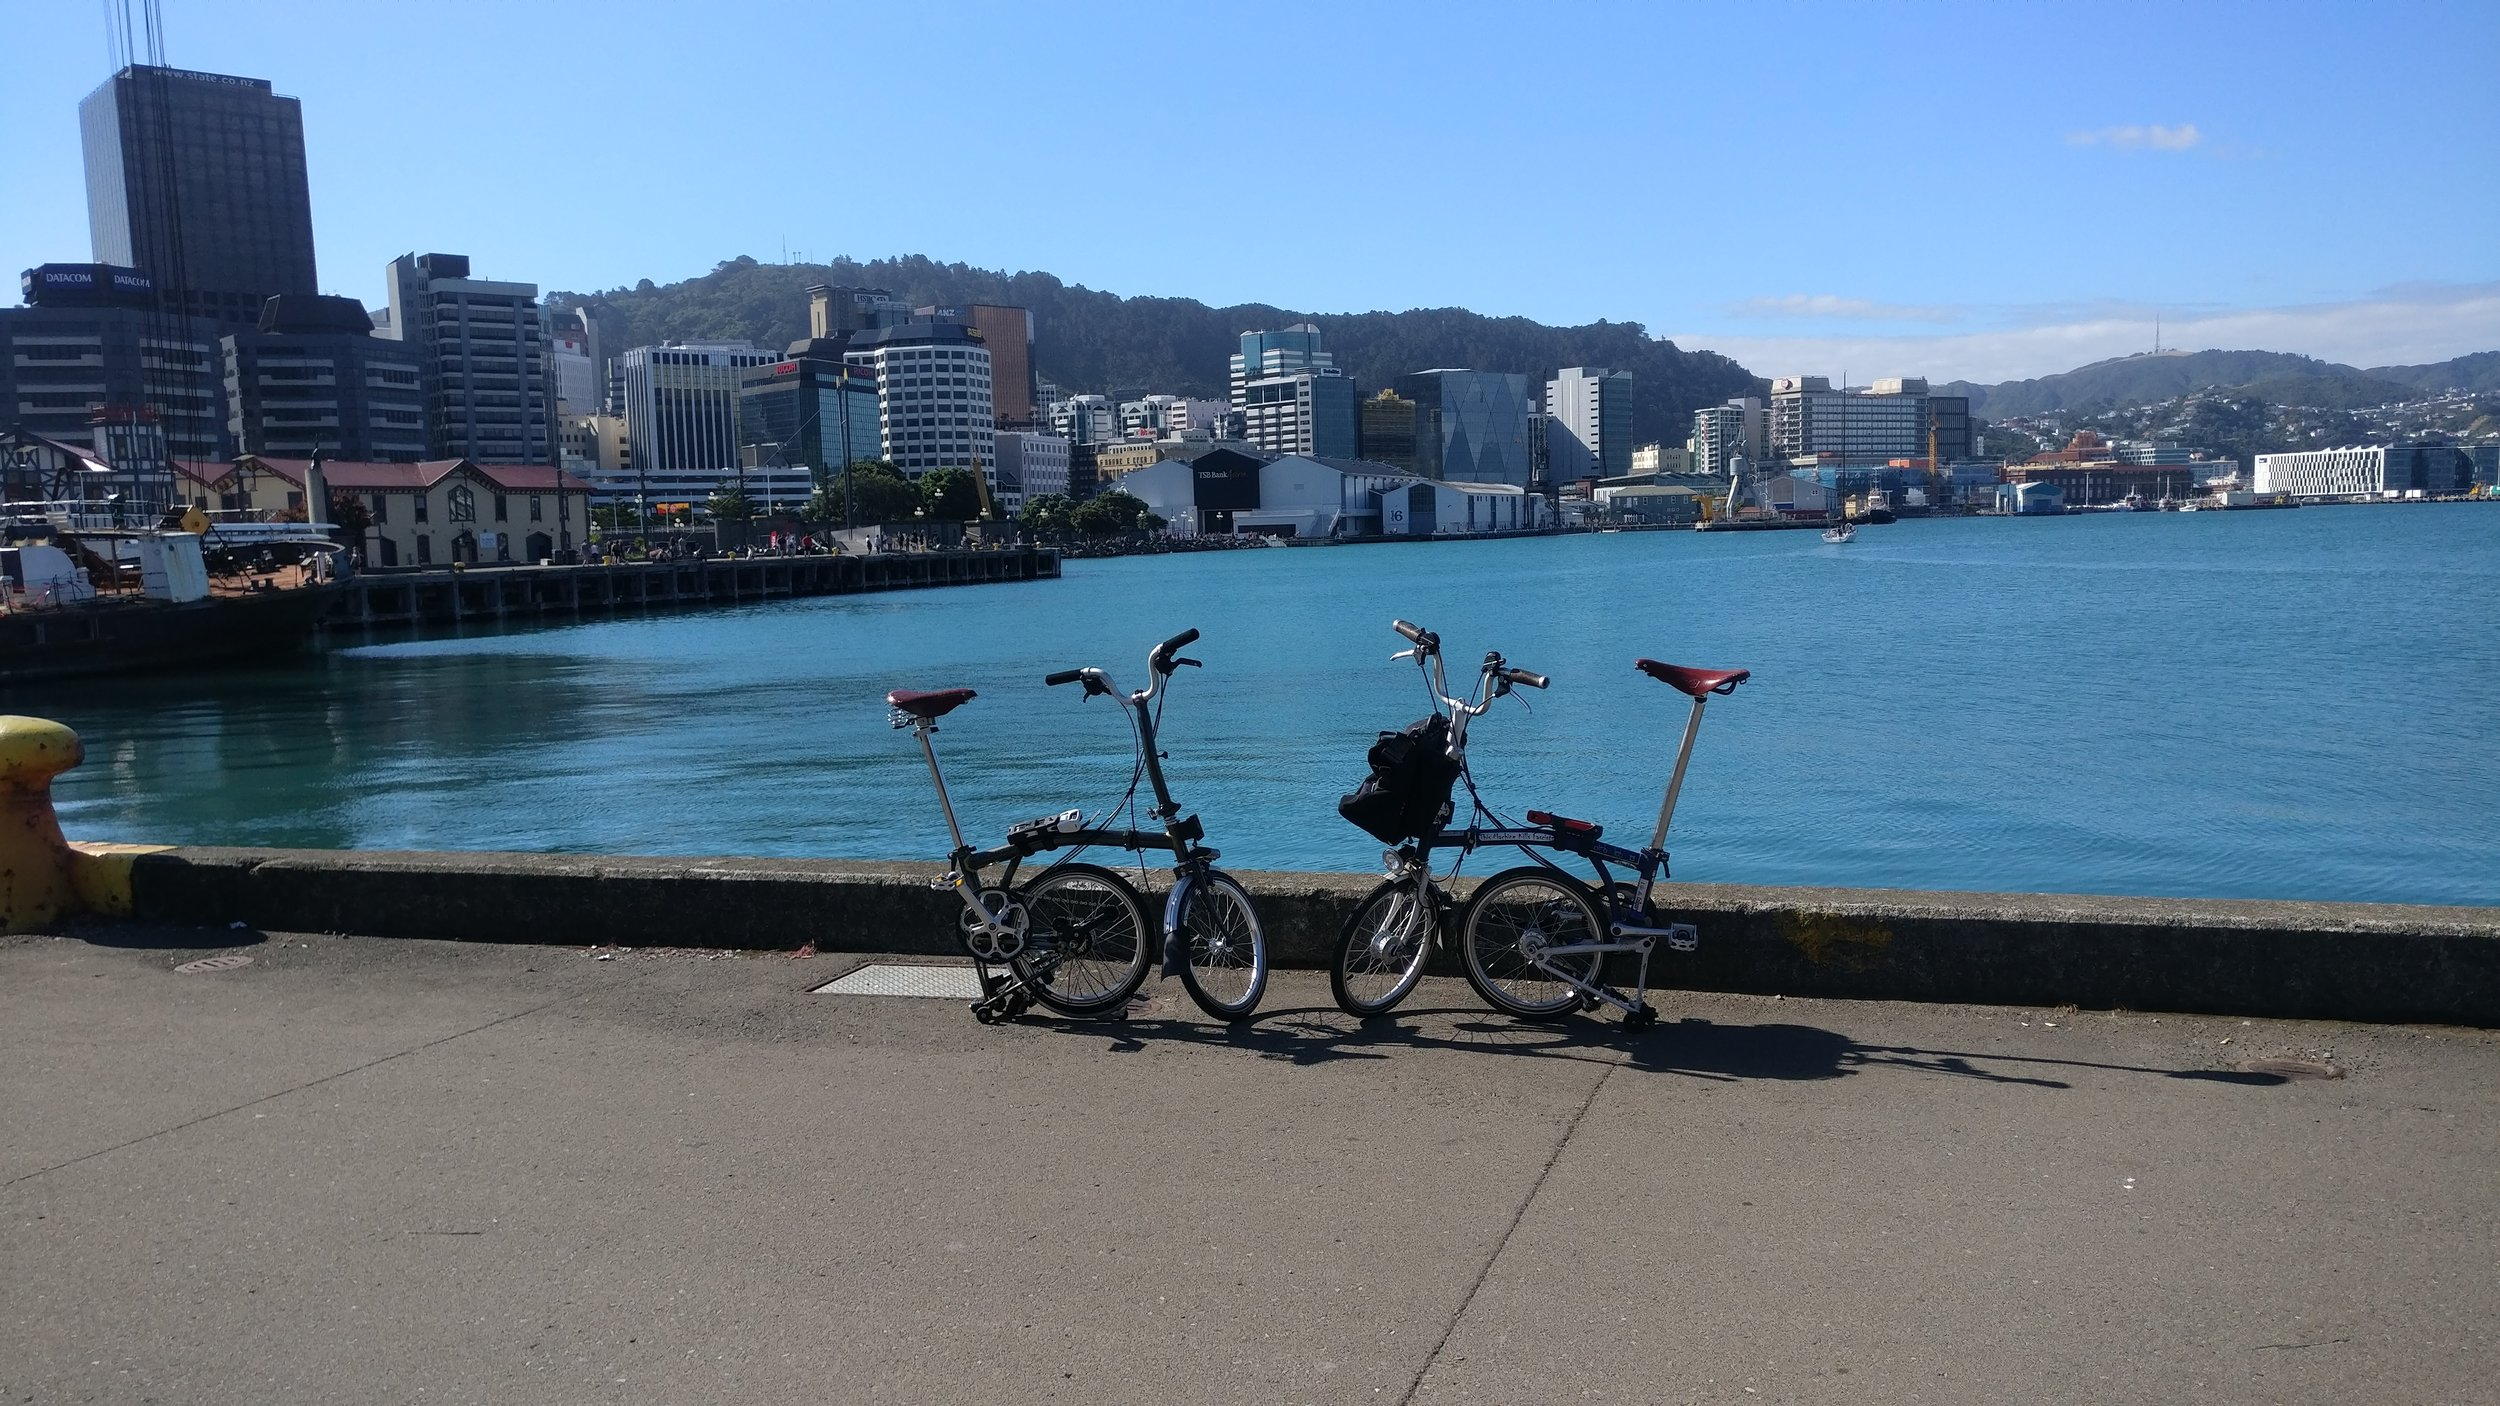 Happy New Year from Windy Wellington, New Zealand! We had a fantastic ride today, and with apologies to everyone Frostbiking, sunshine and 22C was A-OK. We'll be blogging about our travels with  Brompton Bicycles  soon!